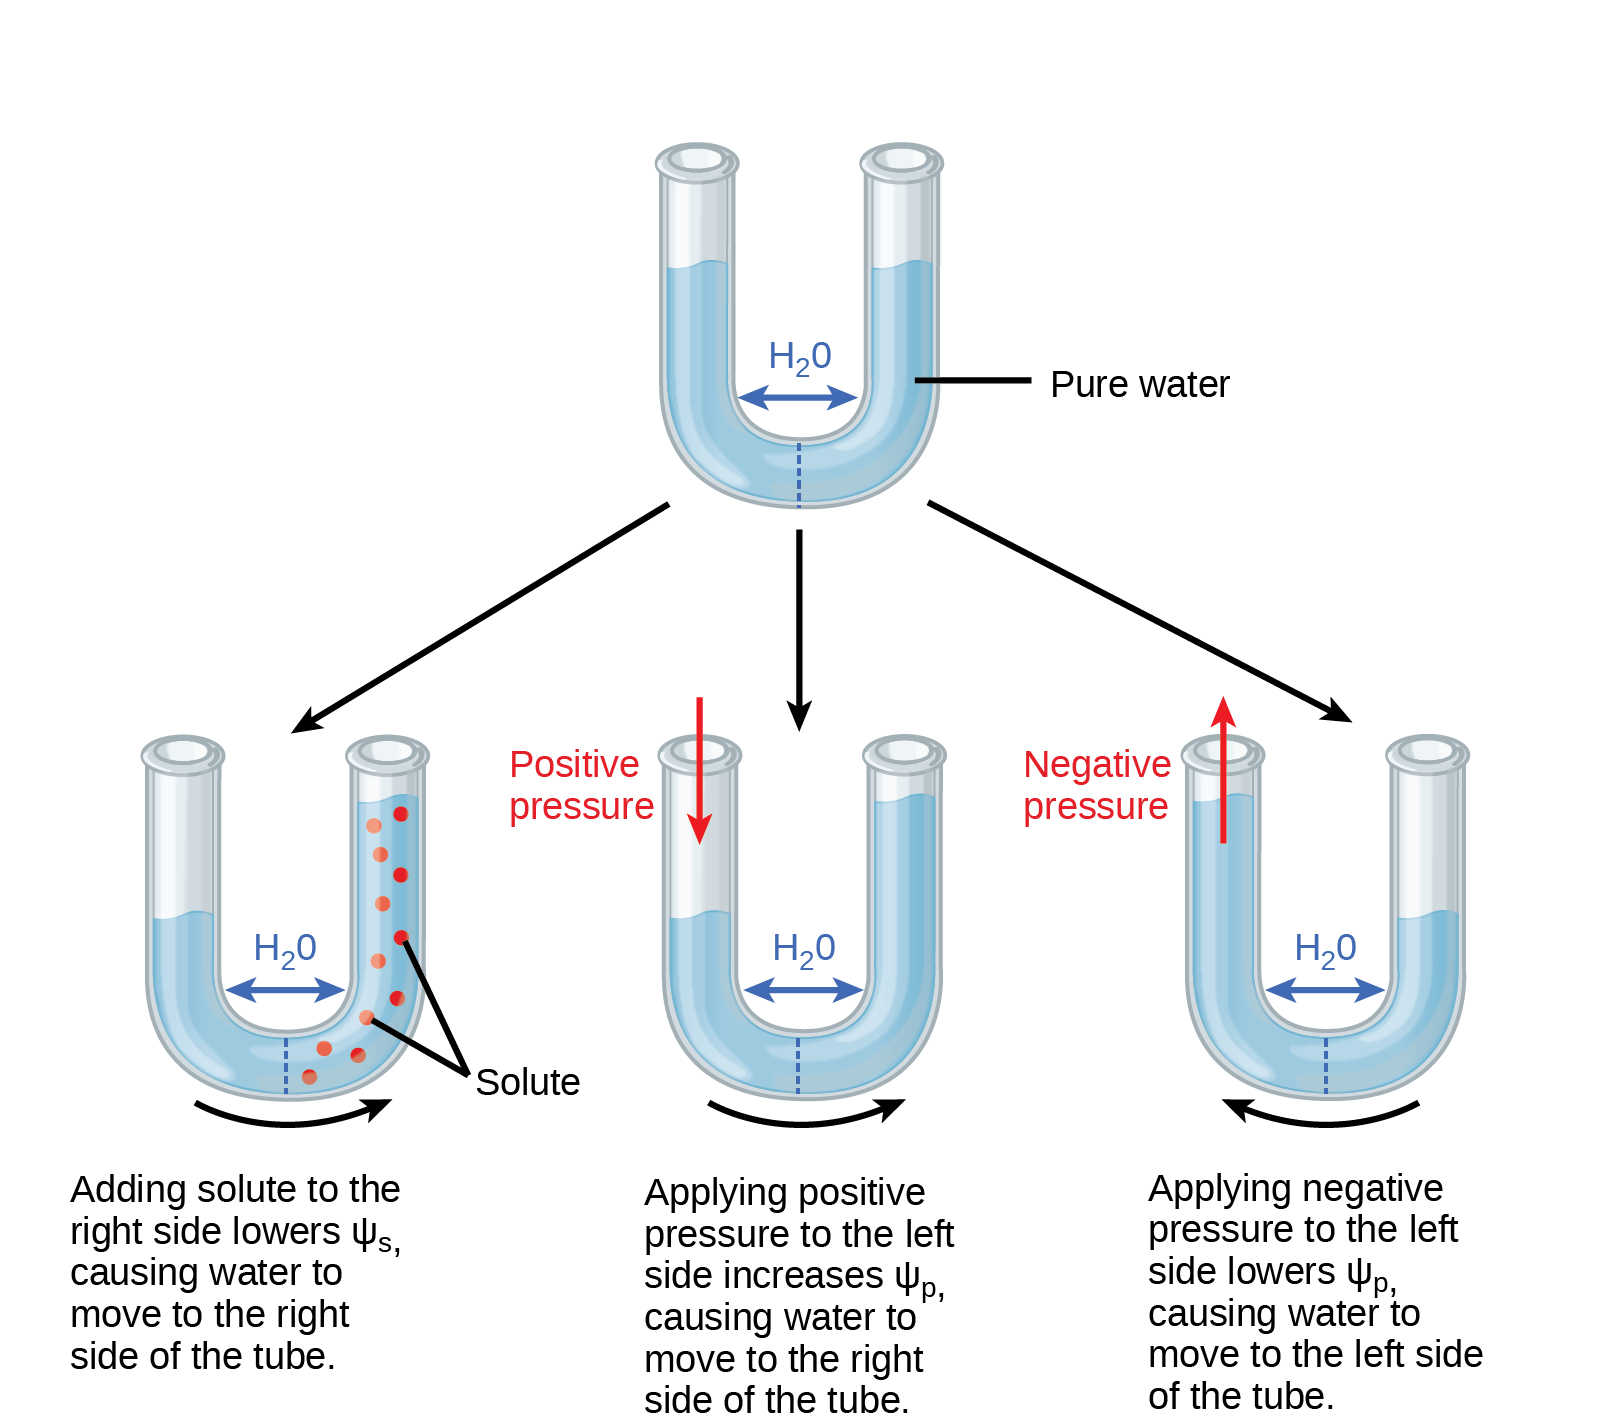 Illustration shows a U-shaped tube holding pure water. A semipermeable membrane, which allows water but not solutes to pass, separates the two sides of the tube. The water level on each side of the tube is the same. Beneath this tube are three more tubes, also divided by semipermeable membranes. In the first tube, solute has been added to the right side. Adding solute to the right side lowers p s i dash s, causing water to move to the right side of the tube. As a result, the water level is higher on the right side. The second tube has pure water on both sides of the membrane. Positive pressure is applied to the left side. Applying positive pressure to the left side causes p s i dash p to increase. As a results, water moves to the right so that the water level is higher on the right than on the left. The third tube also has pure water, but this time negative pressure is applied to the left side. Applying negative pressure lowers p s i dash p, causing water to move to the left side of the tube. As a result, the water level is higher on the left.